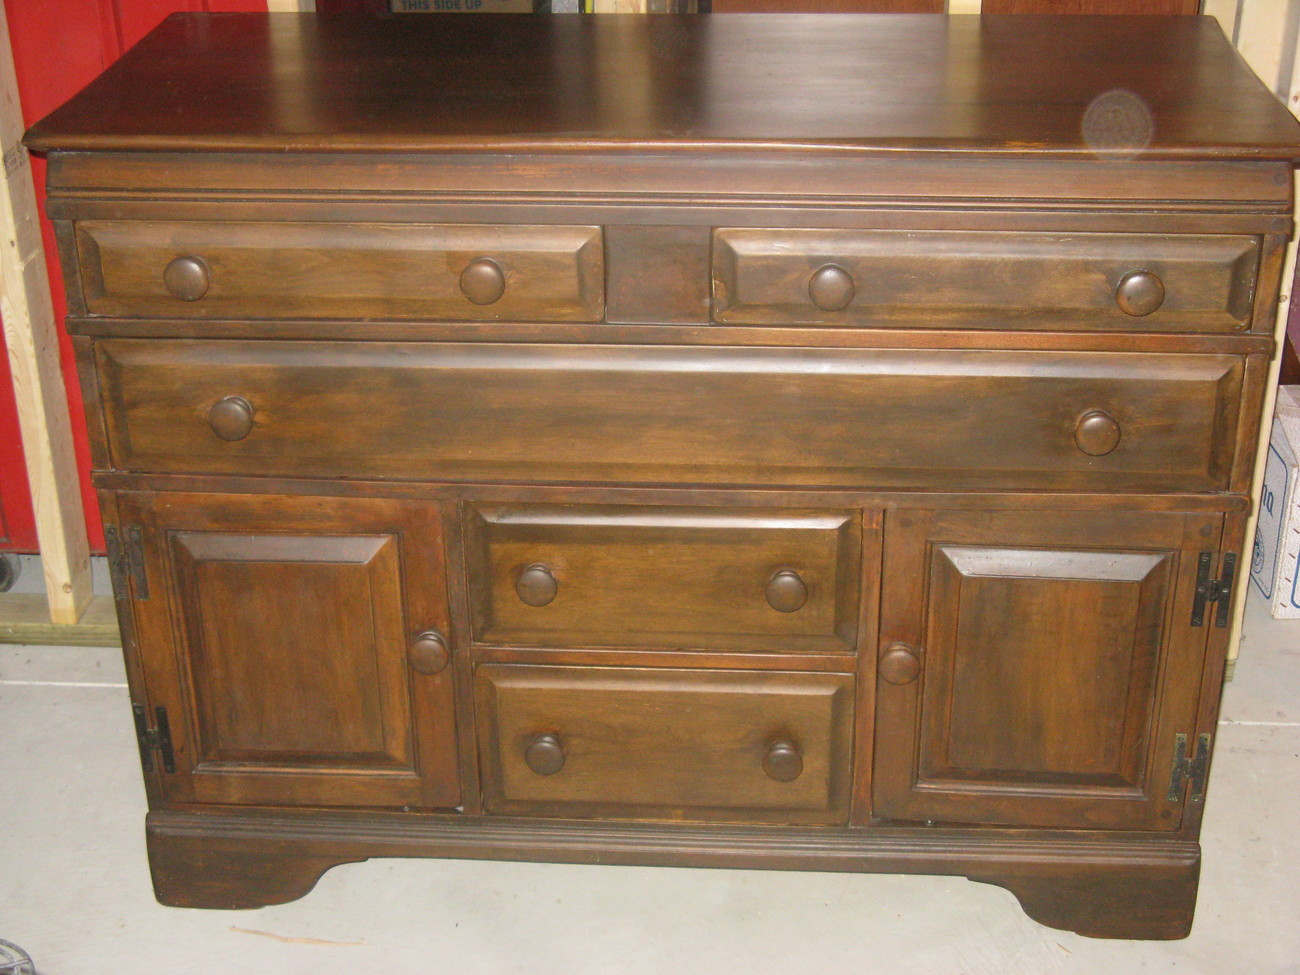 Vintage Solid Maple Bureau/Chest Of Drawers, Dark Stain